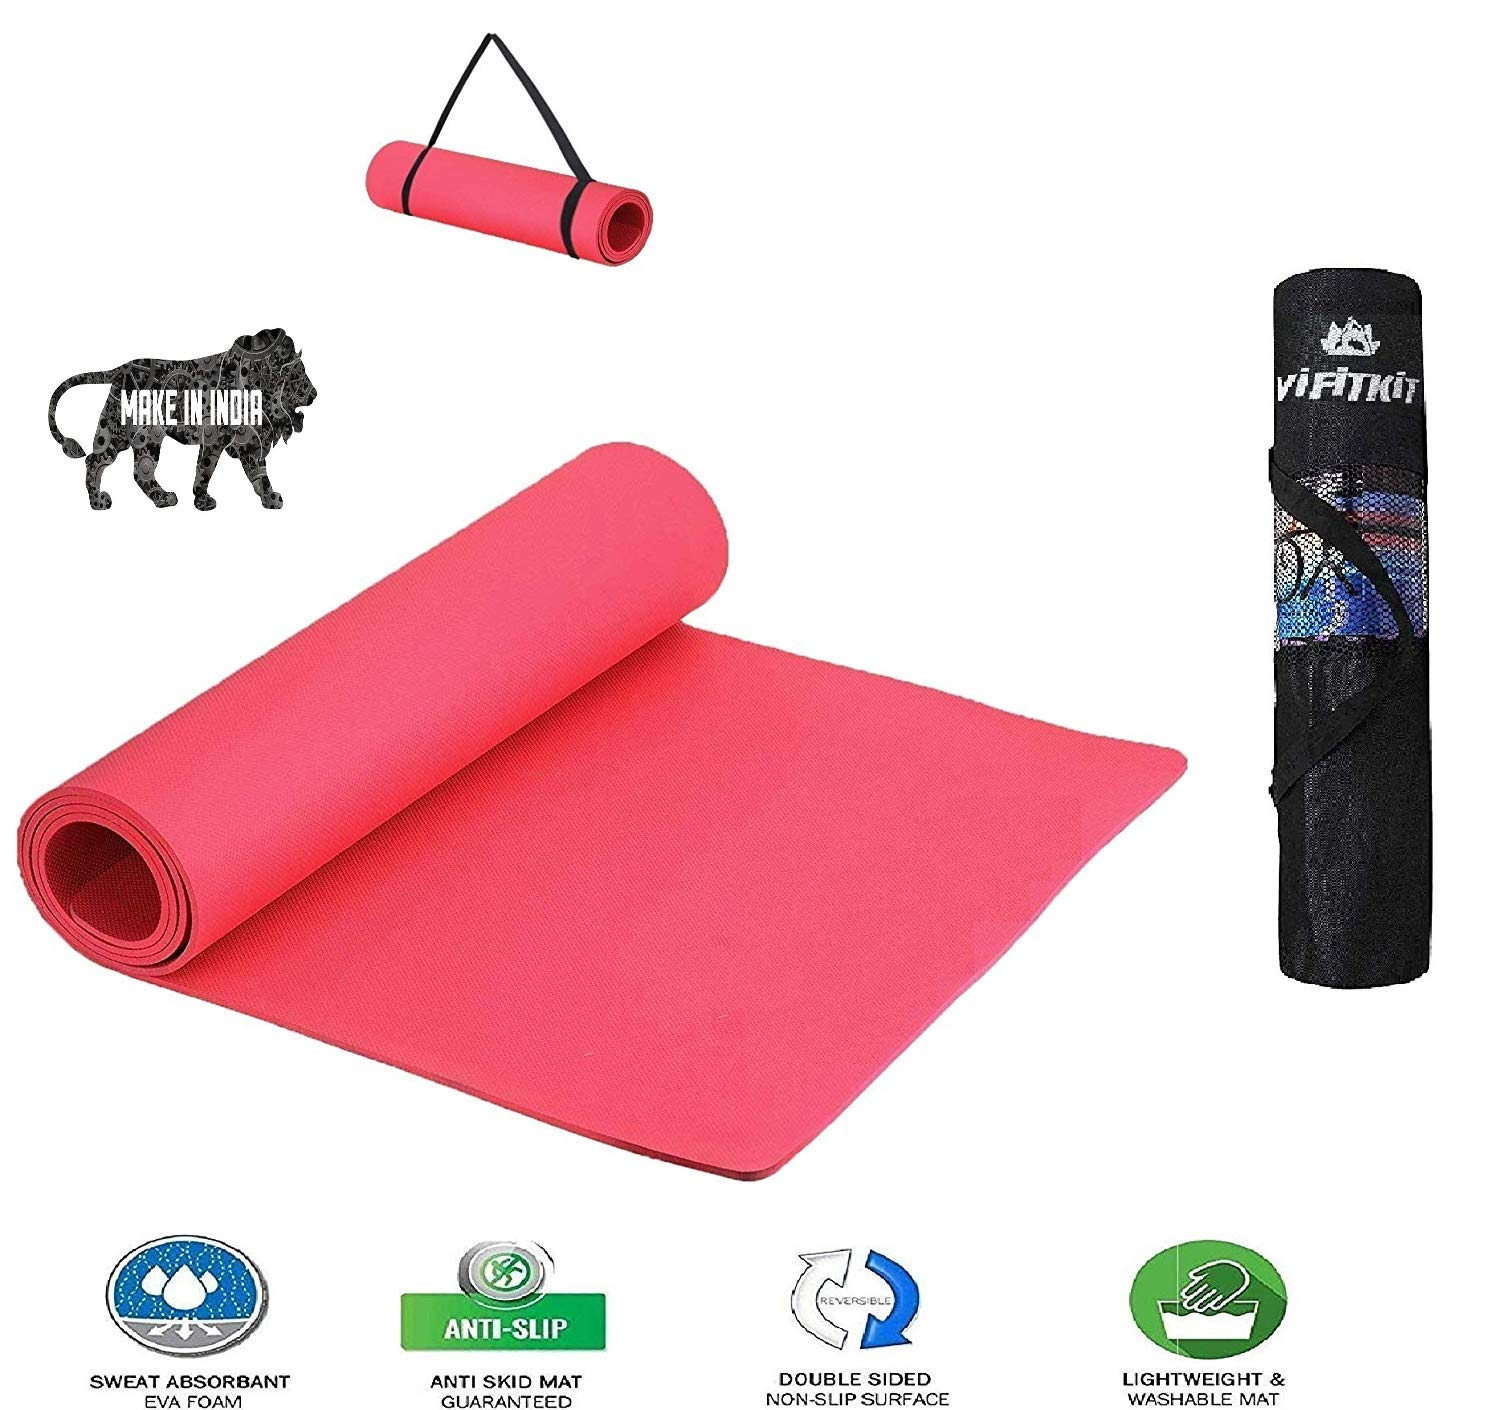 VIFITKIT Non Slip Yoga Mat with Shoulder Strap and Carrying Bag, High Density Yoga mats for Home